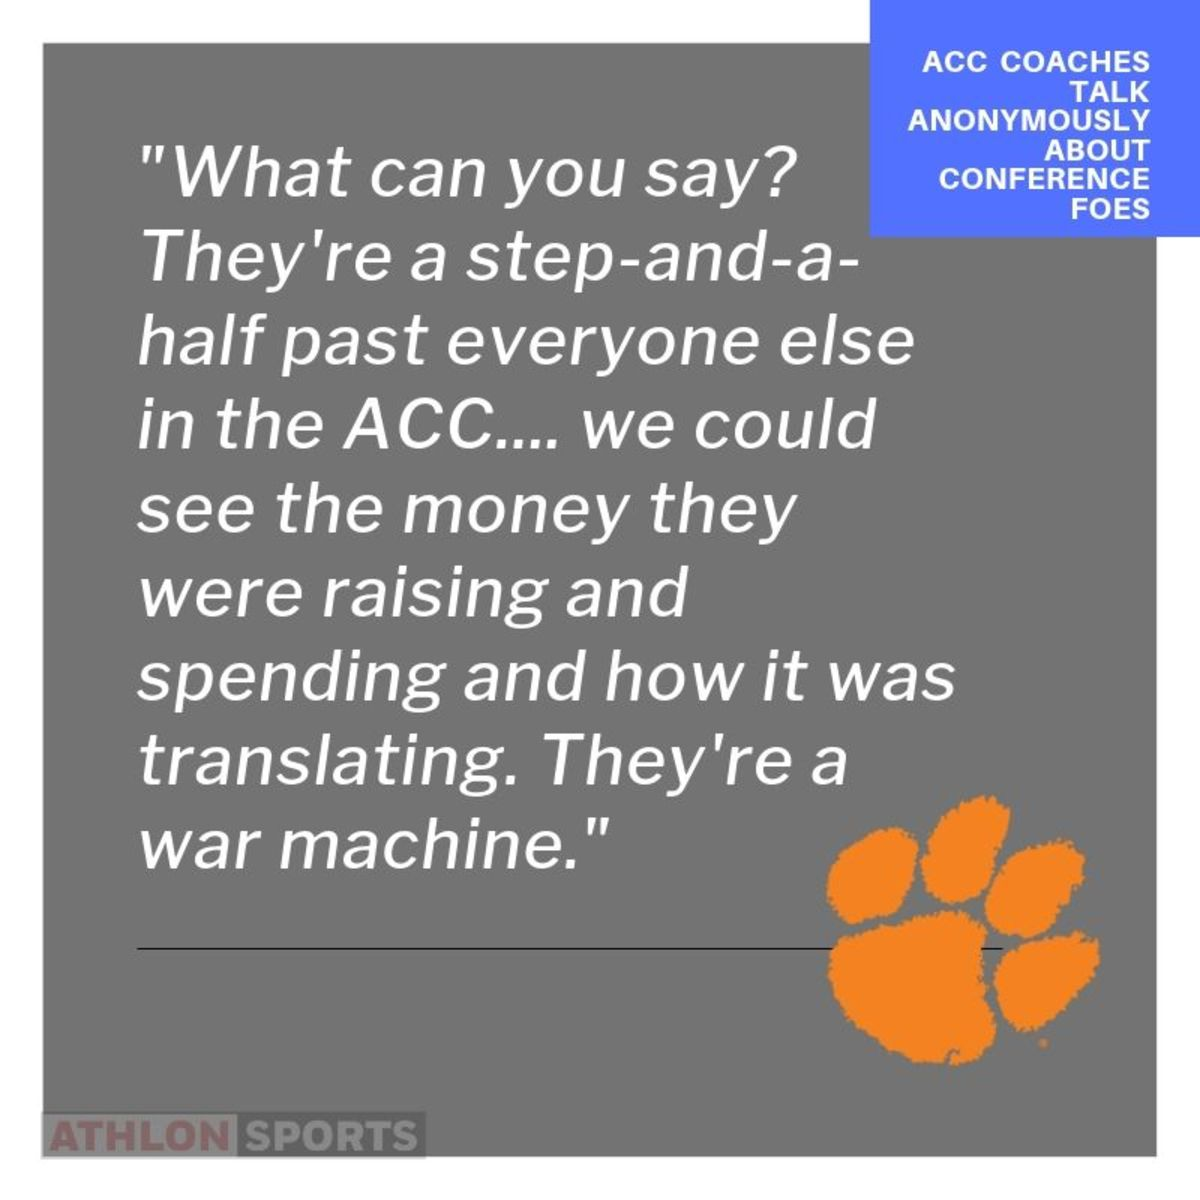 Anonymous coaches quotes about Clemson and the ACC